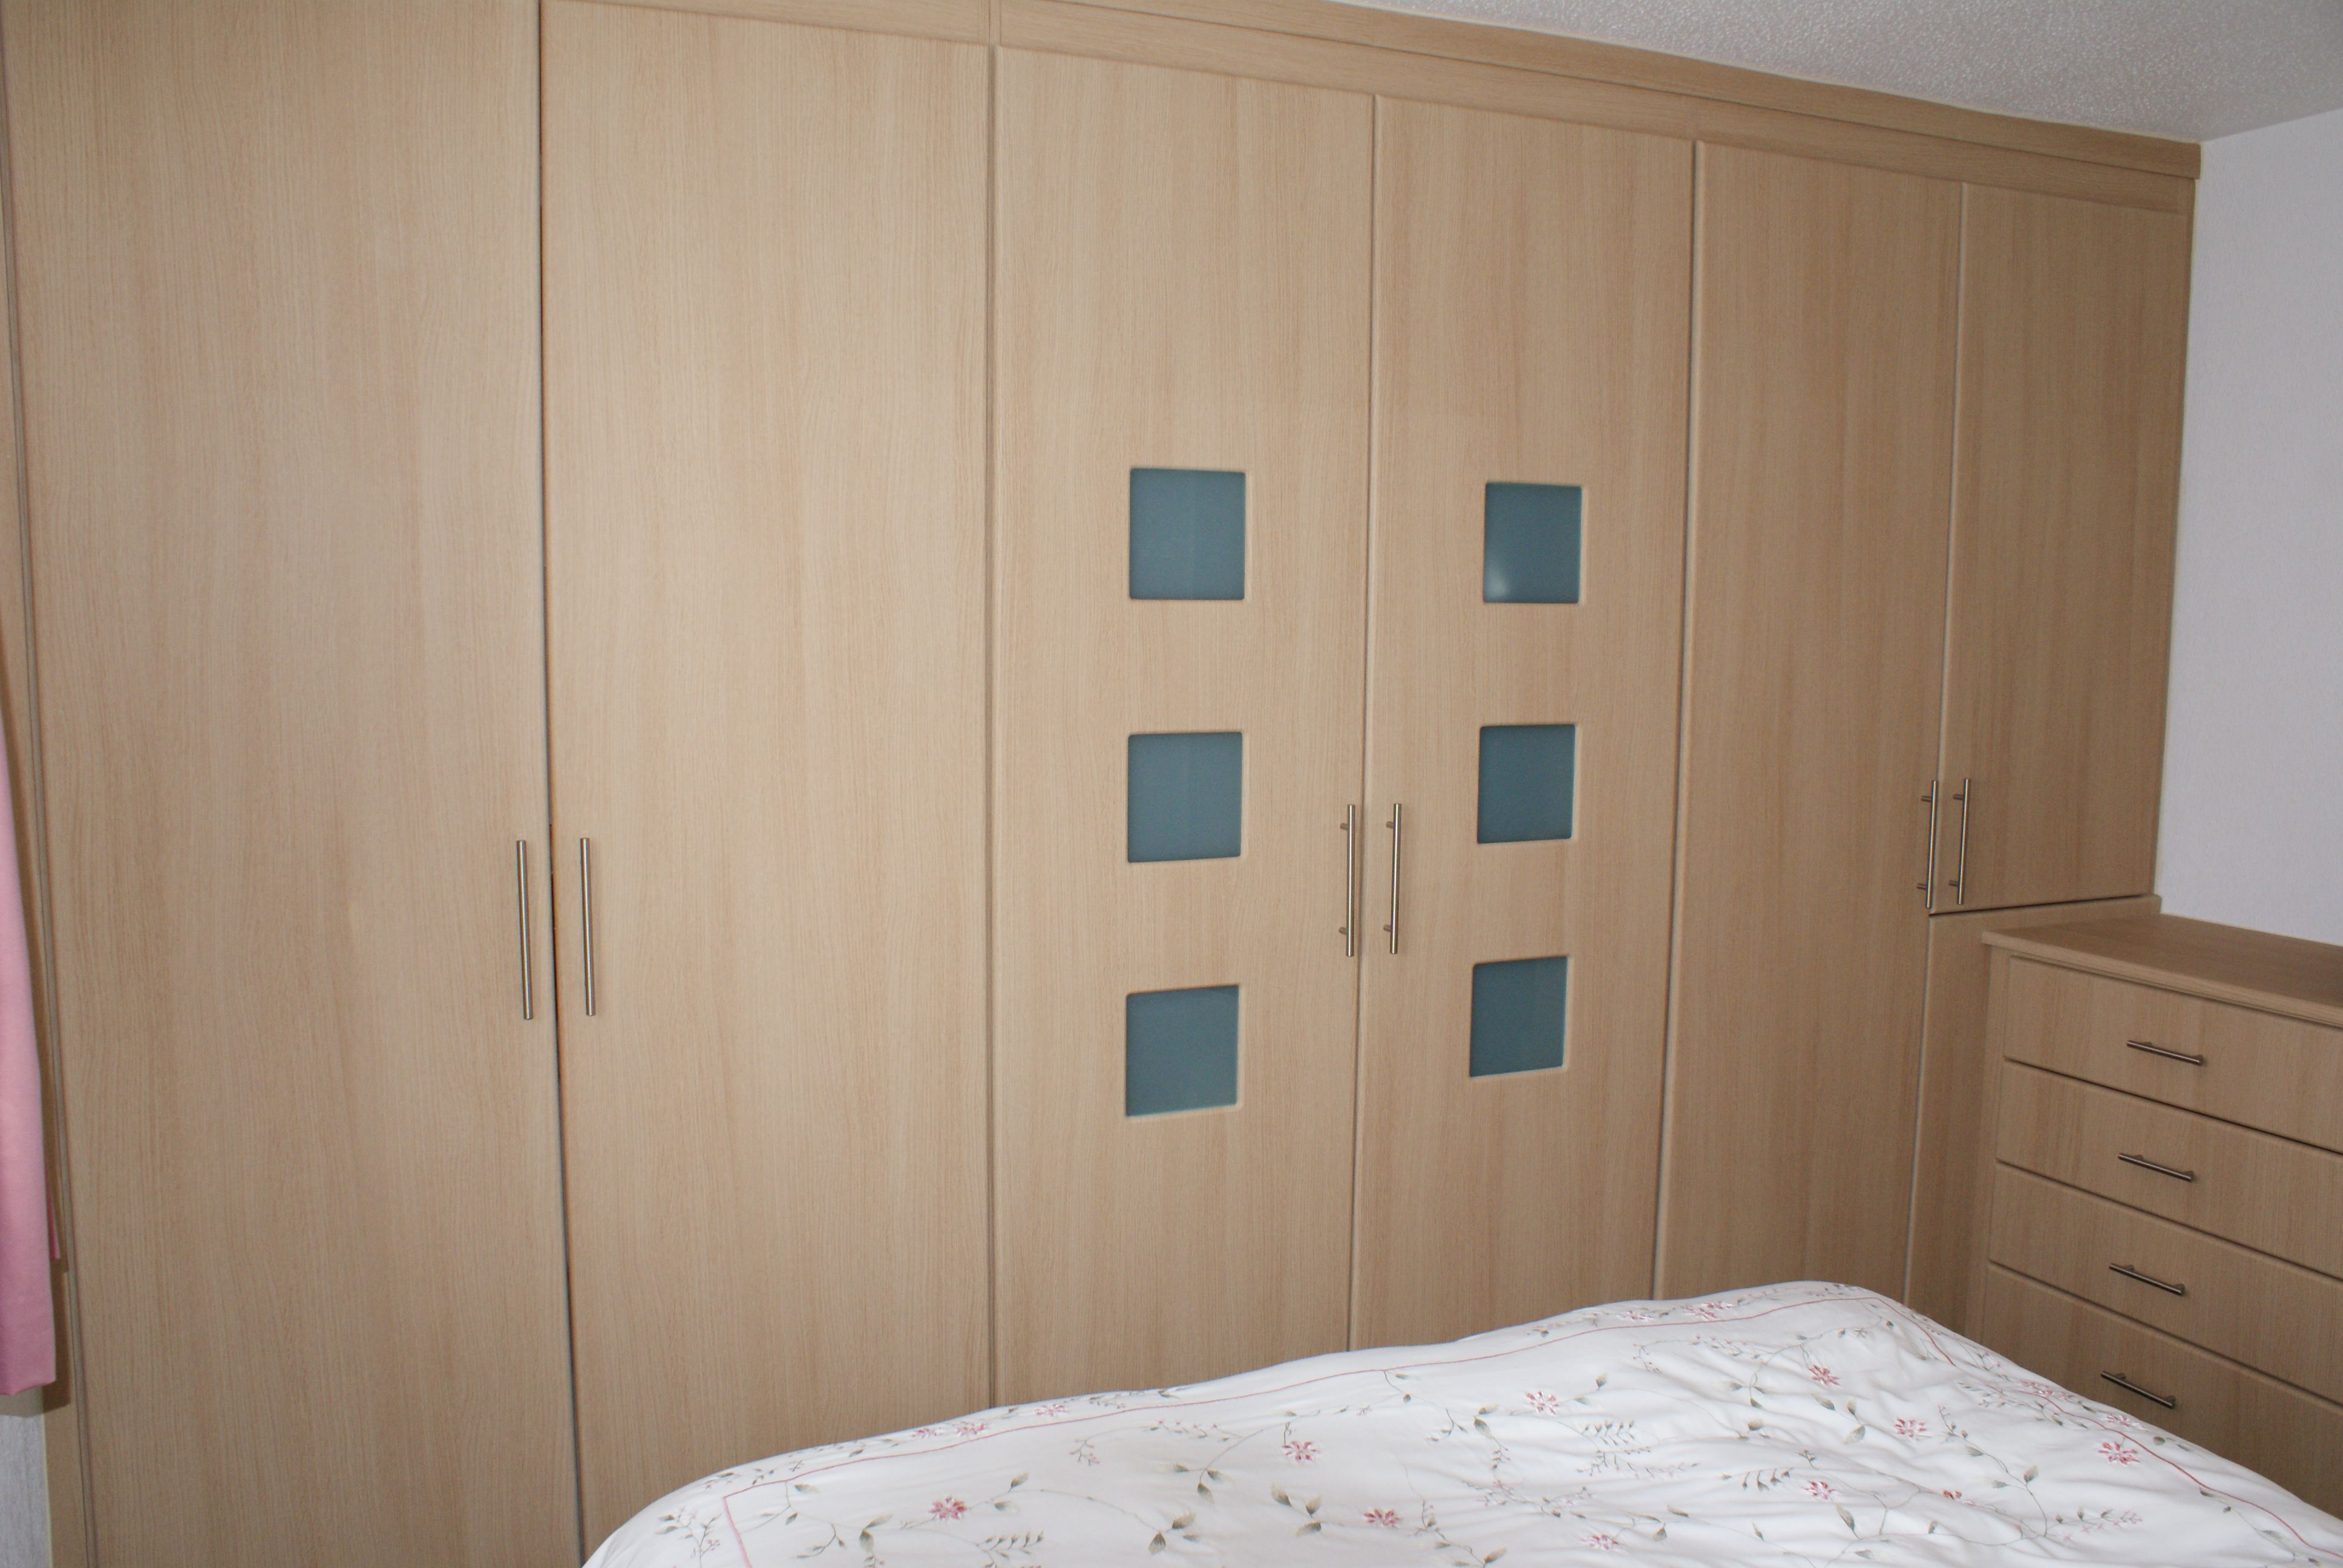 Ed Wardrobes With Window Panels In A Natural Wood Finish Bedroom Furniture